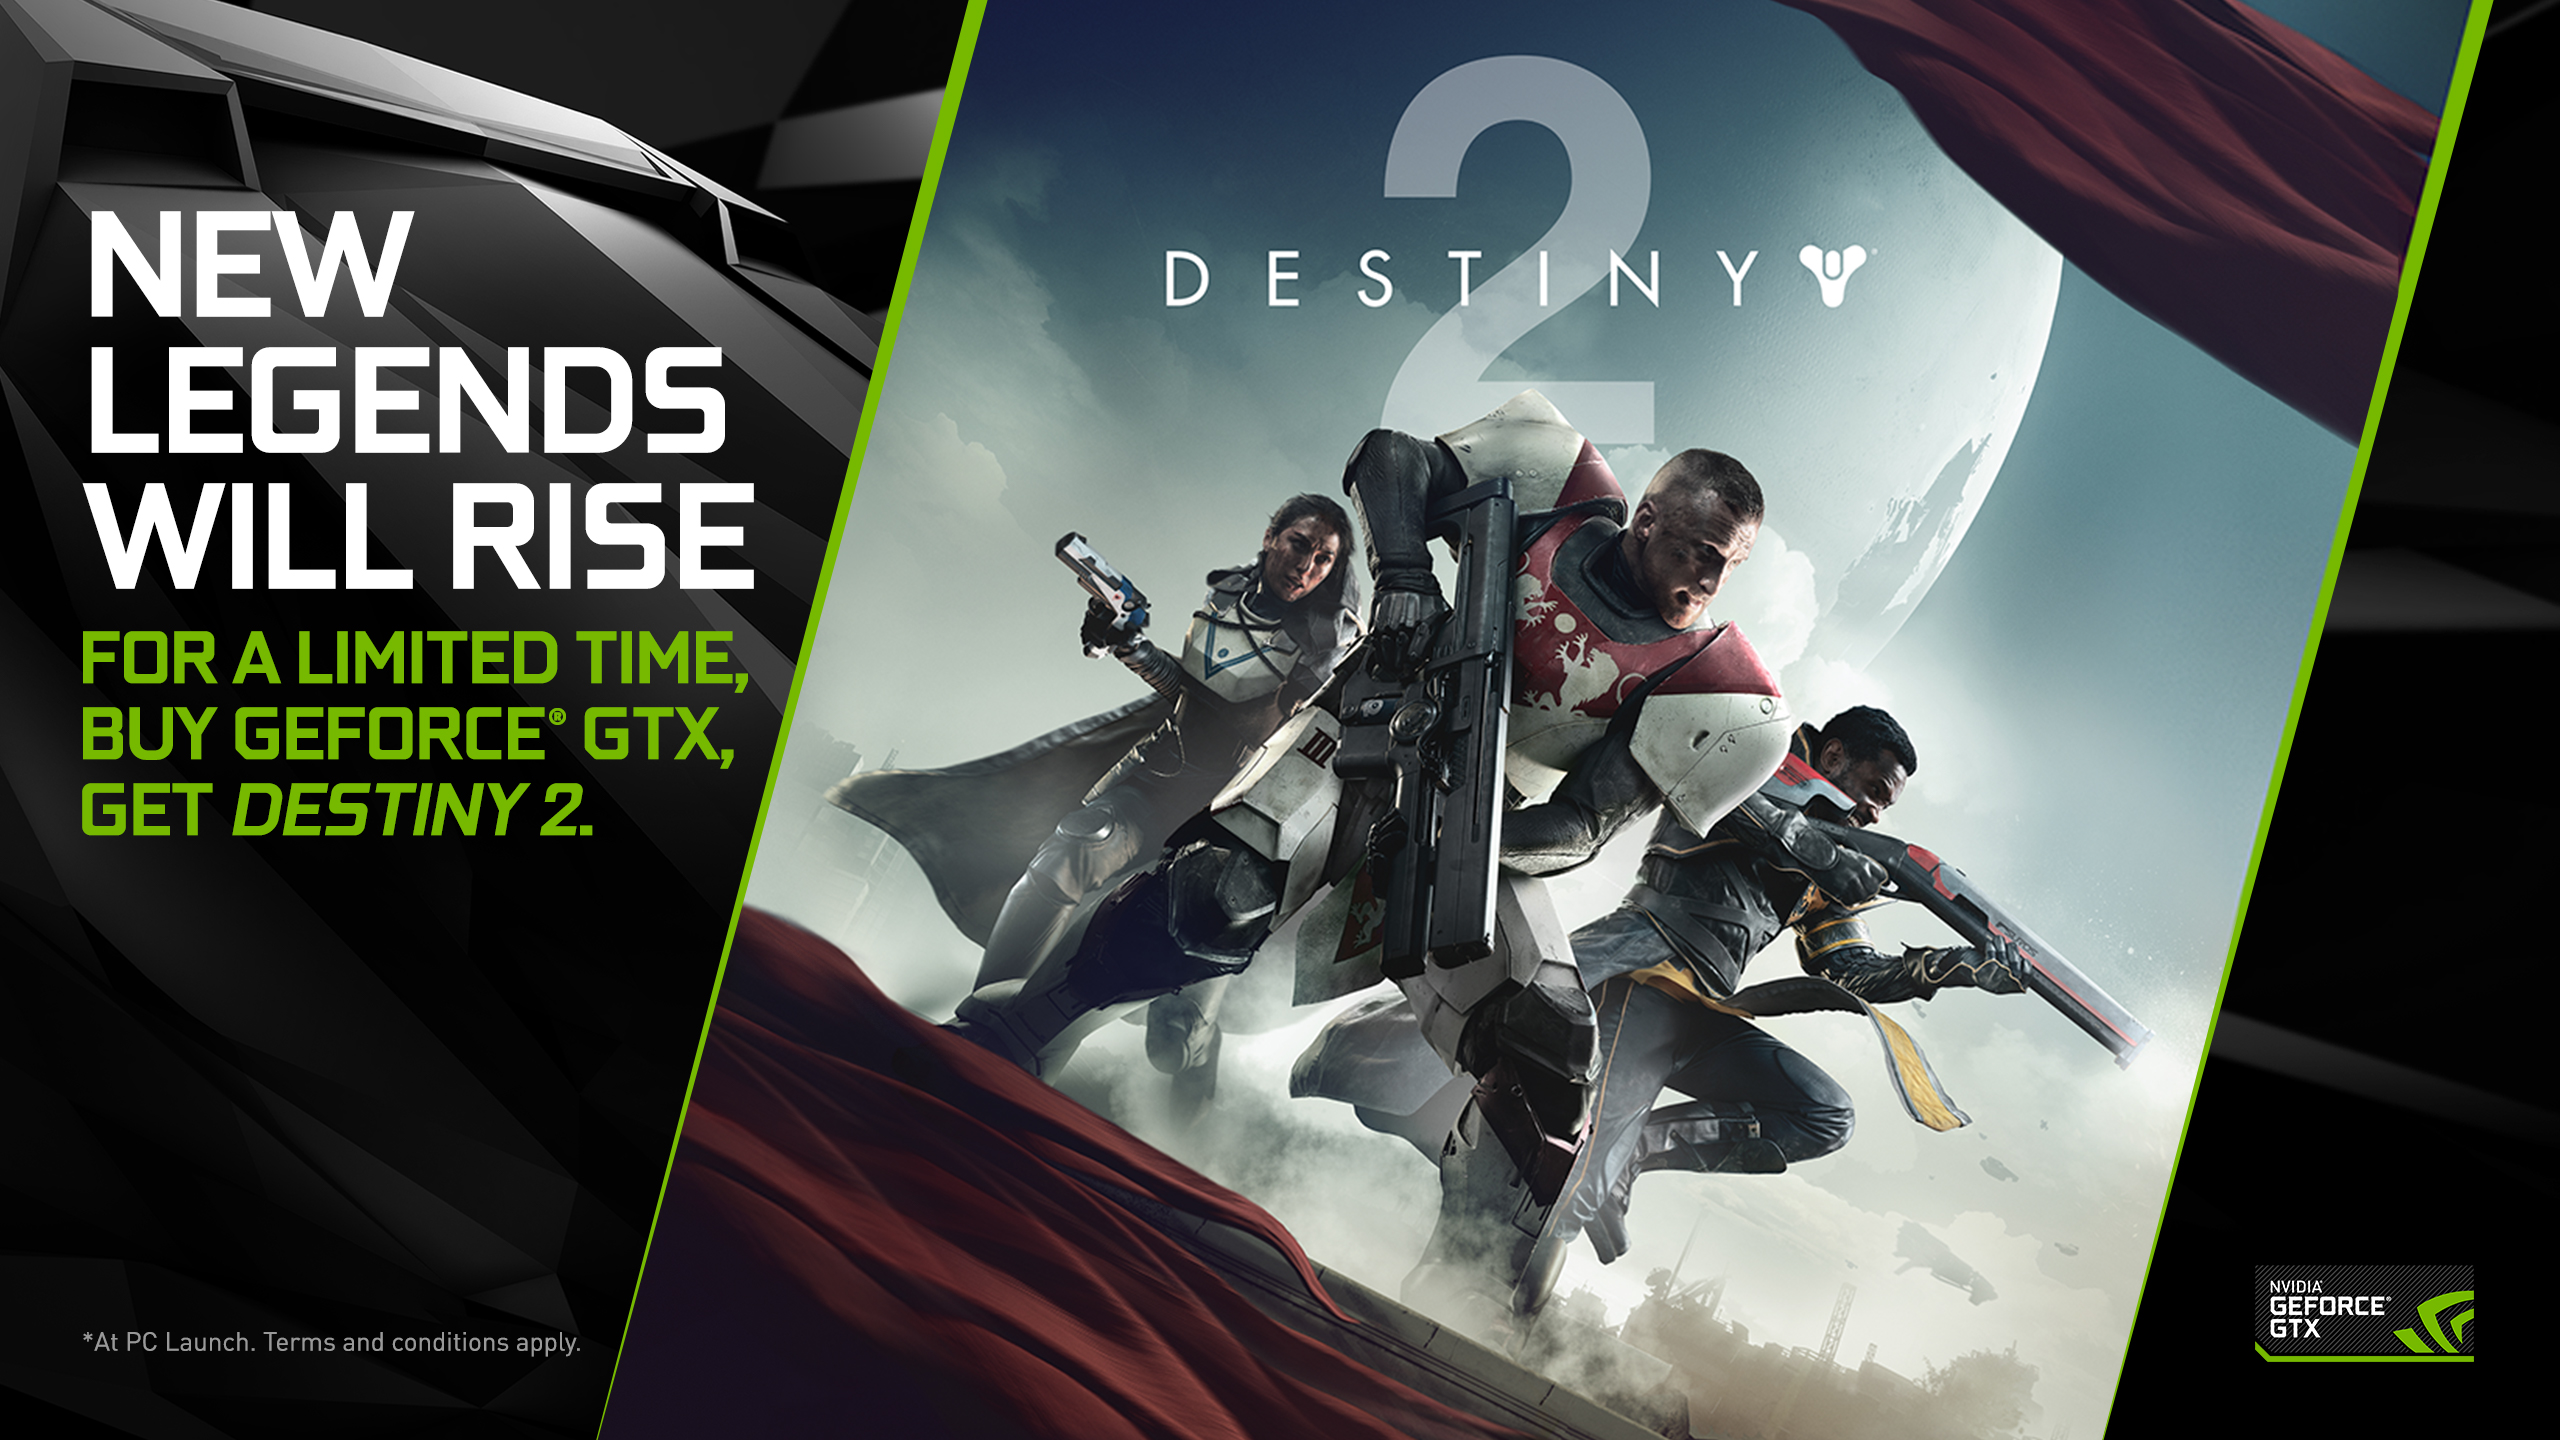 The GeForce GTX Destiny 2 Bundle Is Back For A Limited Time